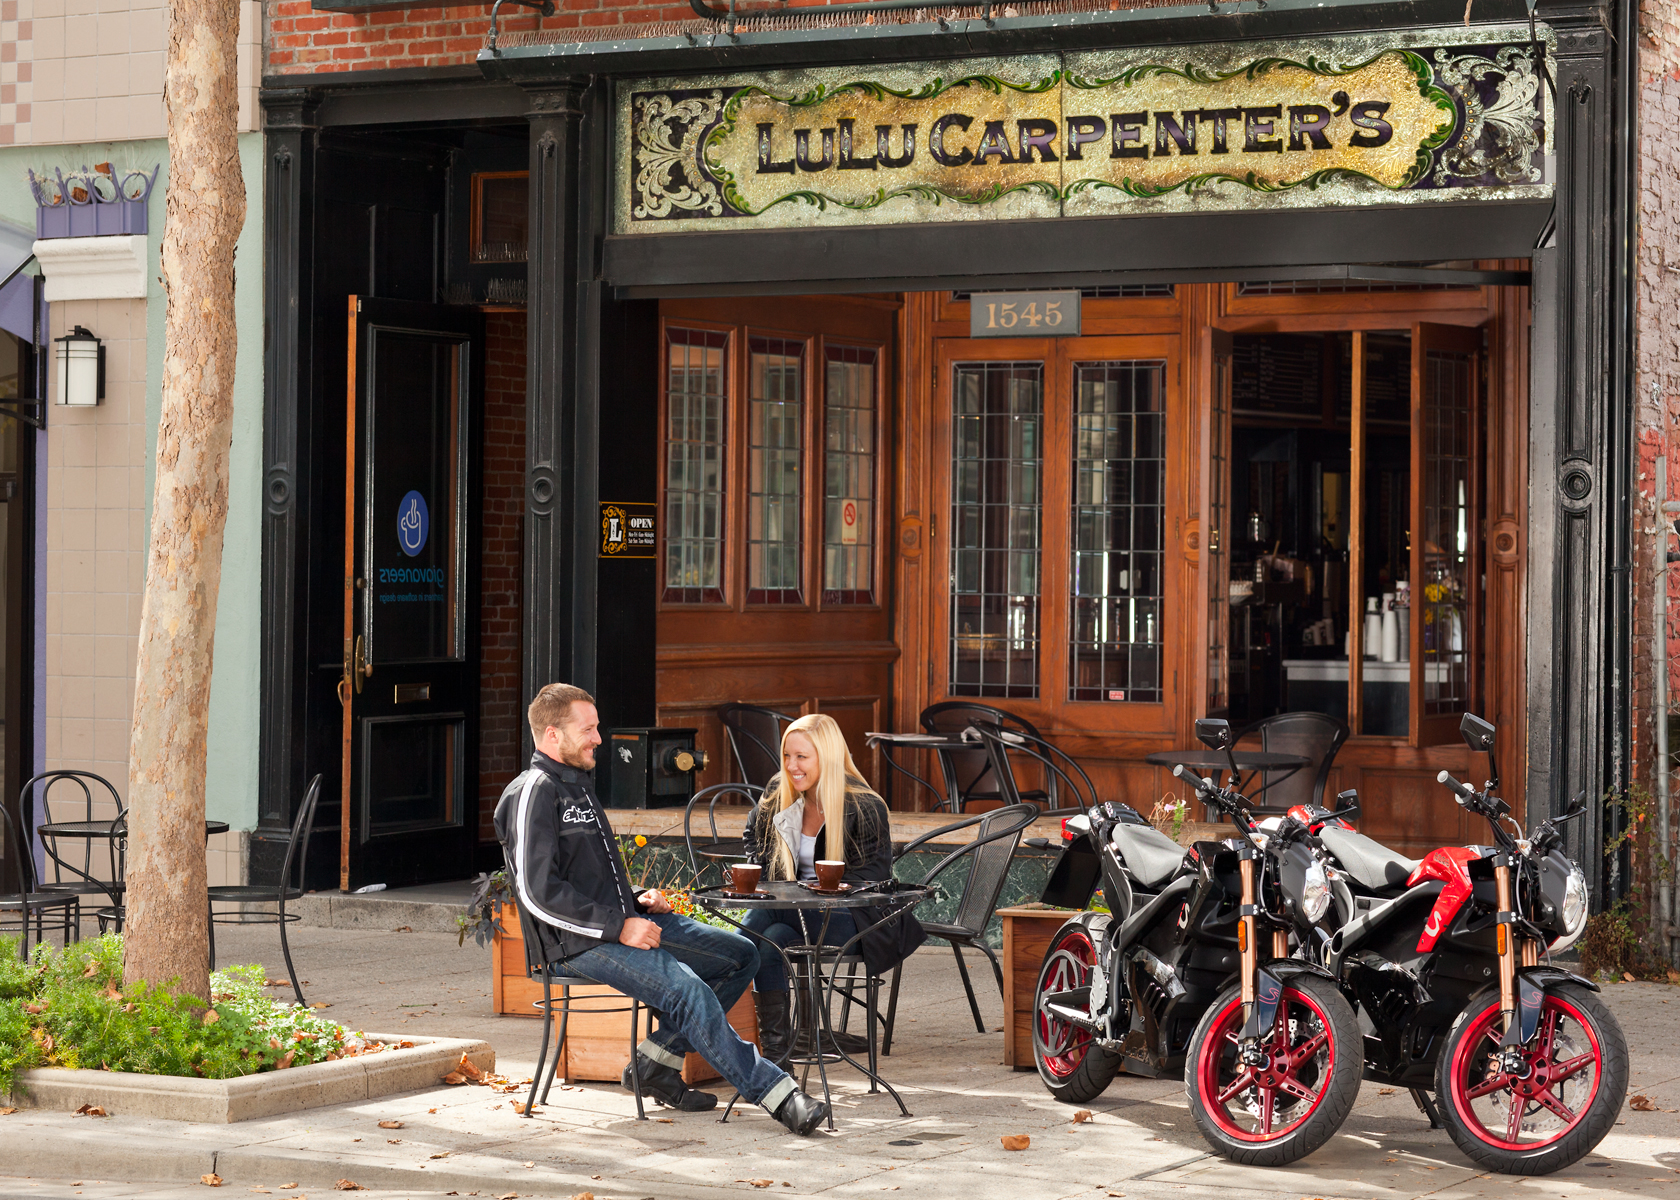 '.2012 Zero Motorcycles: LuLu Carpenter's Cafe, Santa Cruz.'